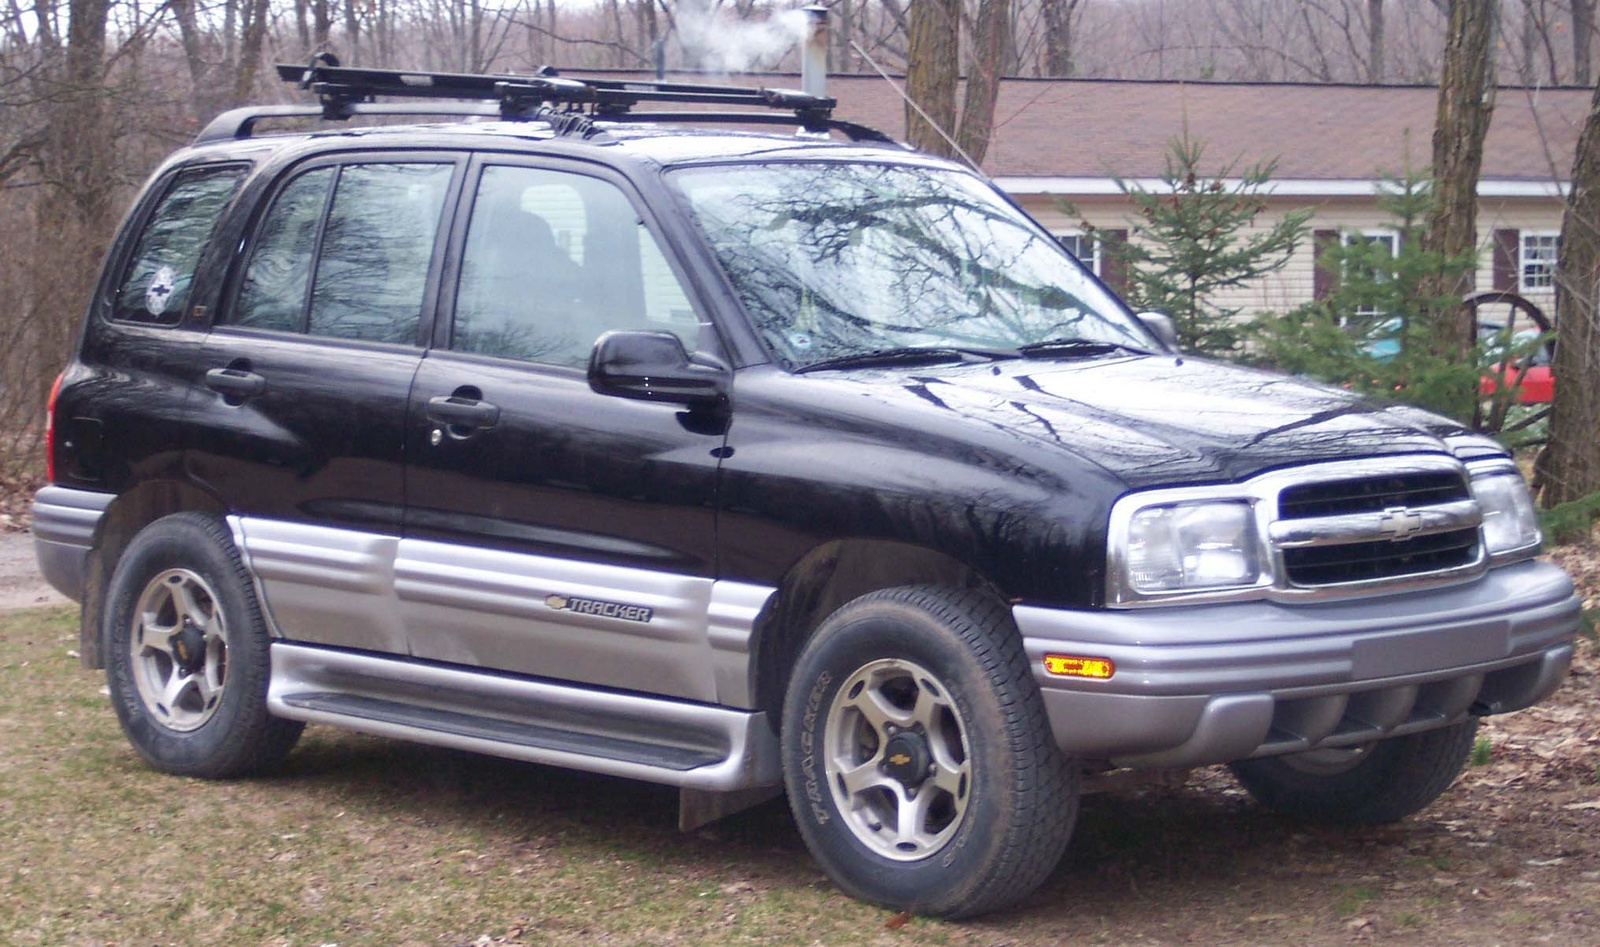 Picture of 2001 Chevrolet Tracker 4 Dr LT 4WD SUV